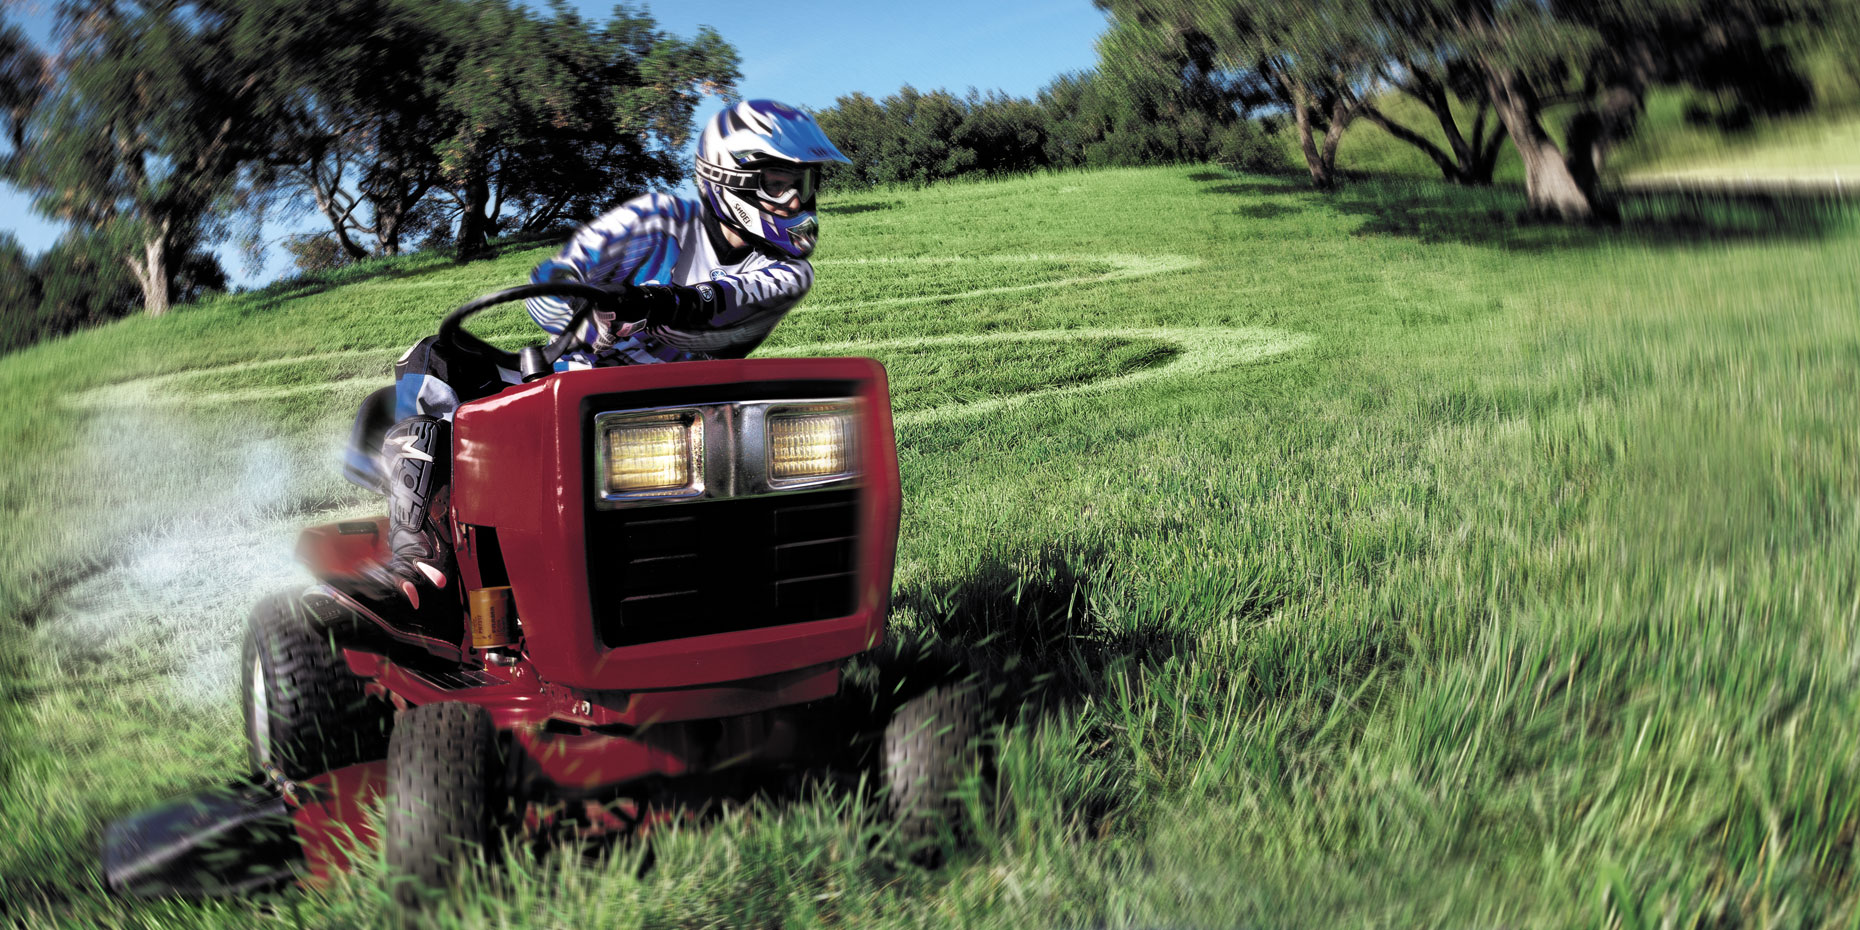 YAMAHA_LAWNMOWER_ADRT2011